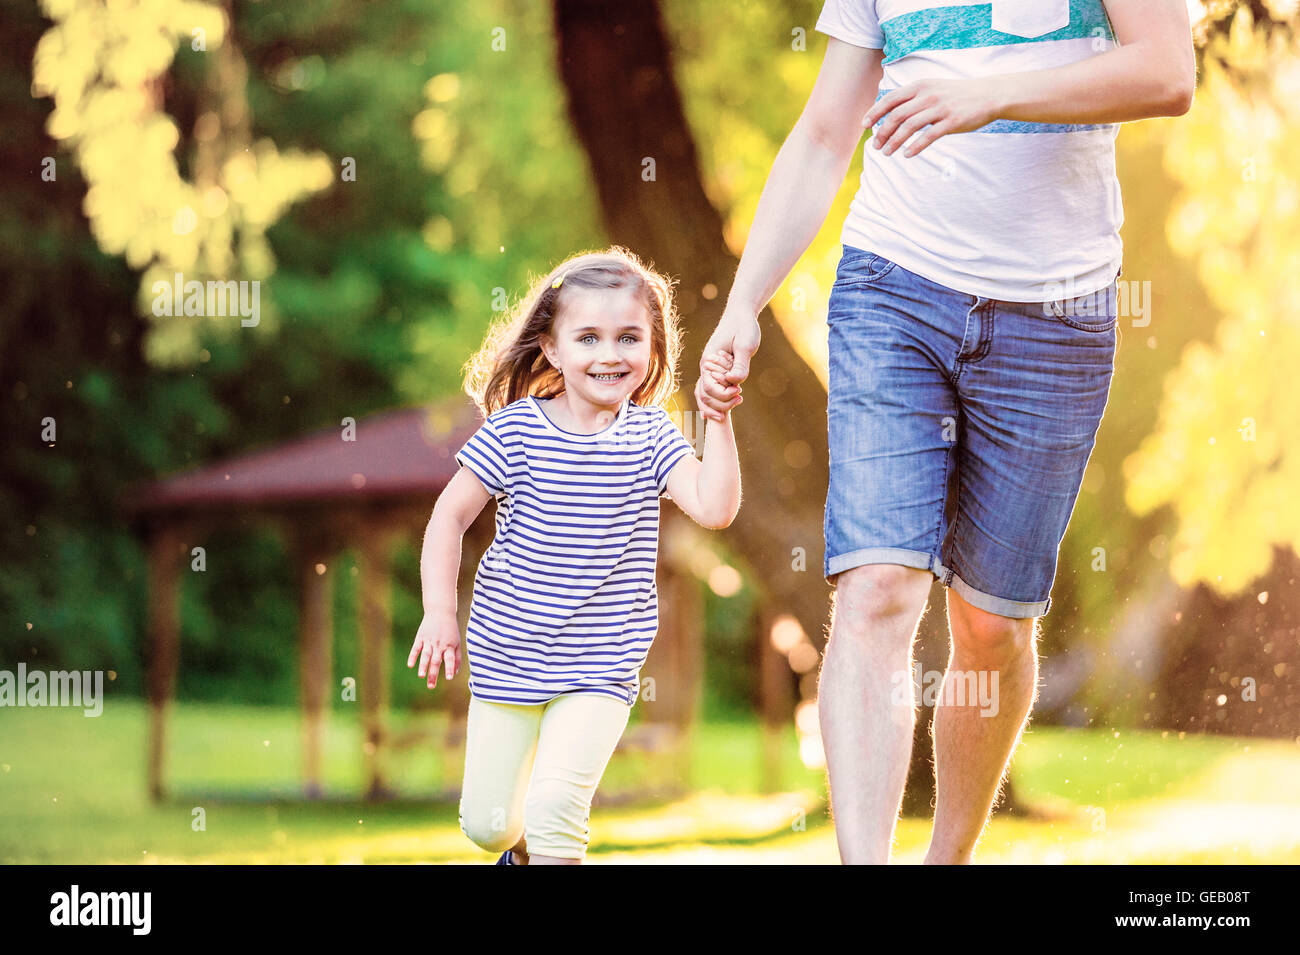 0e730e5ebf Portrait of smiling little girl running with her father hand in hand in a  park -